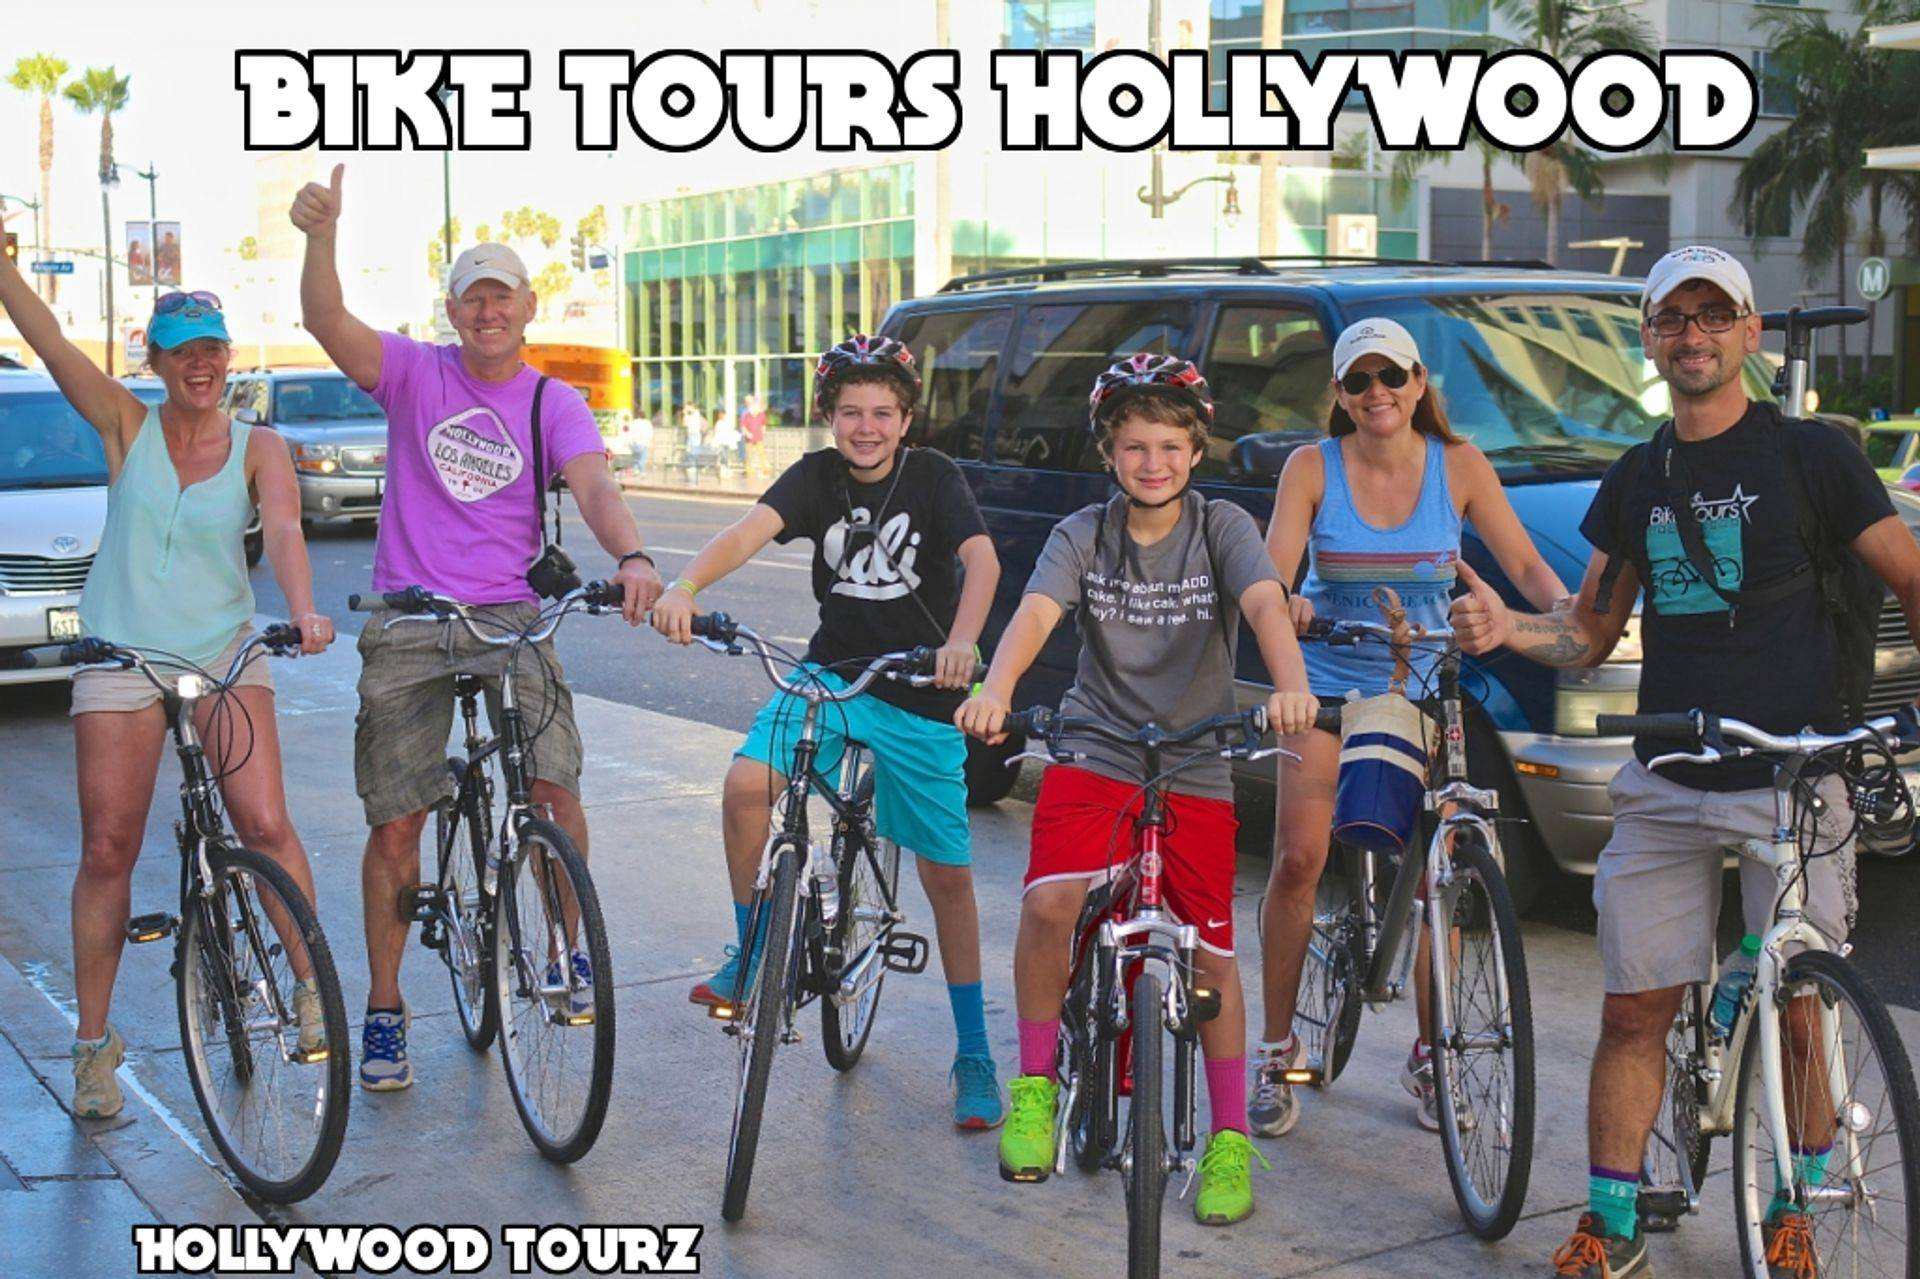 Hollywood Sightseeing Tours in Los Angeles, California